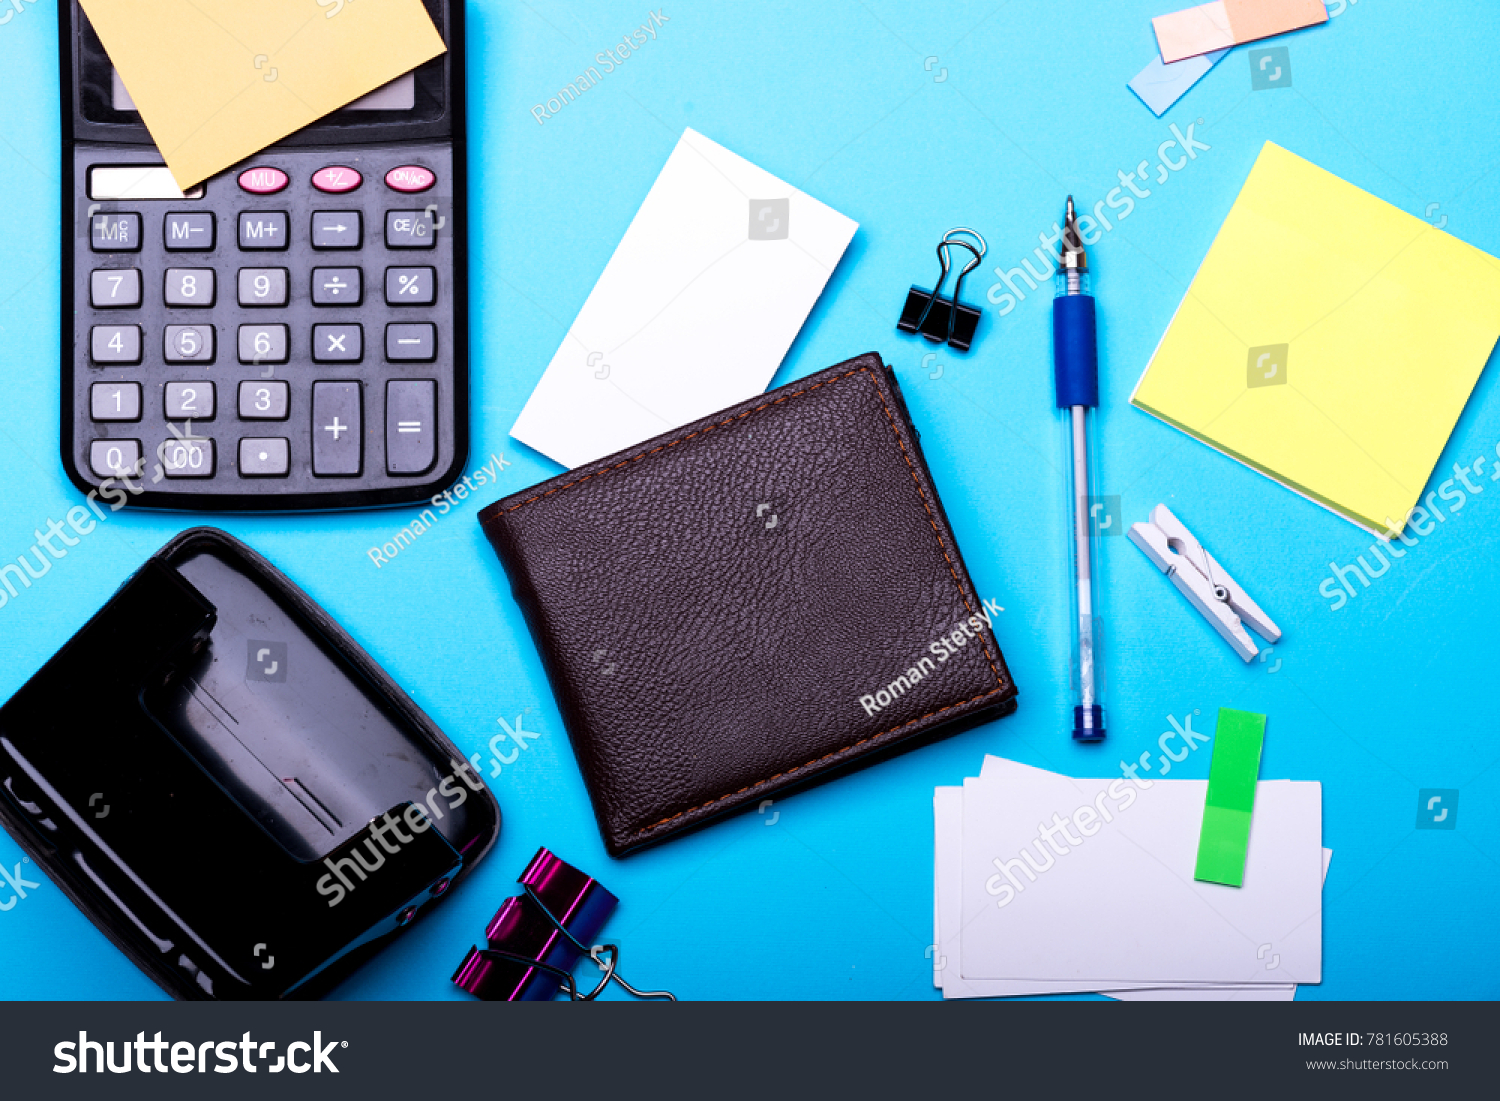 Business Card Binders Near Sticky Notes Stock Photo & Image (Royalty ...